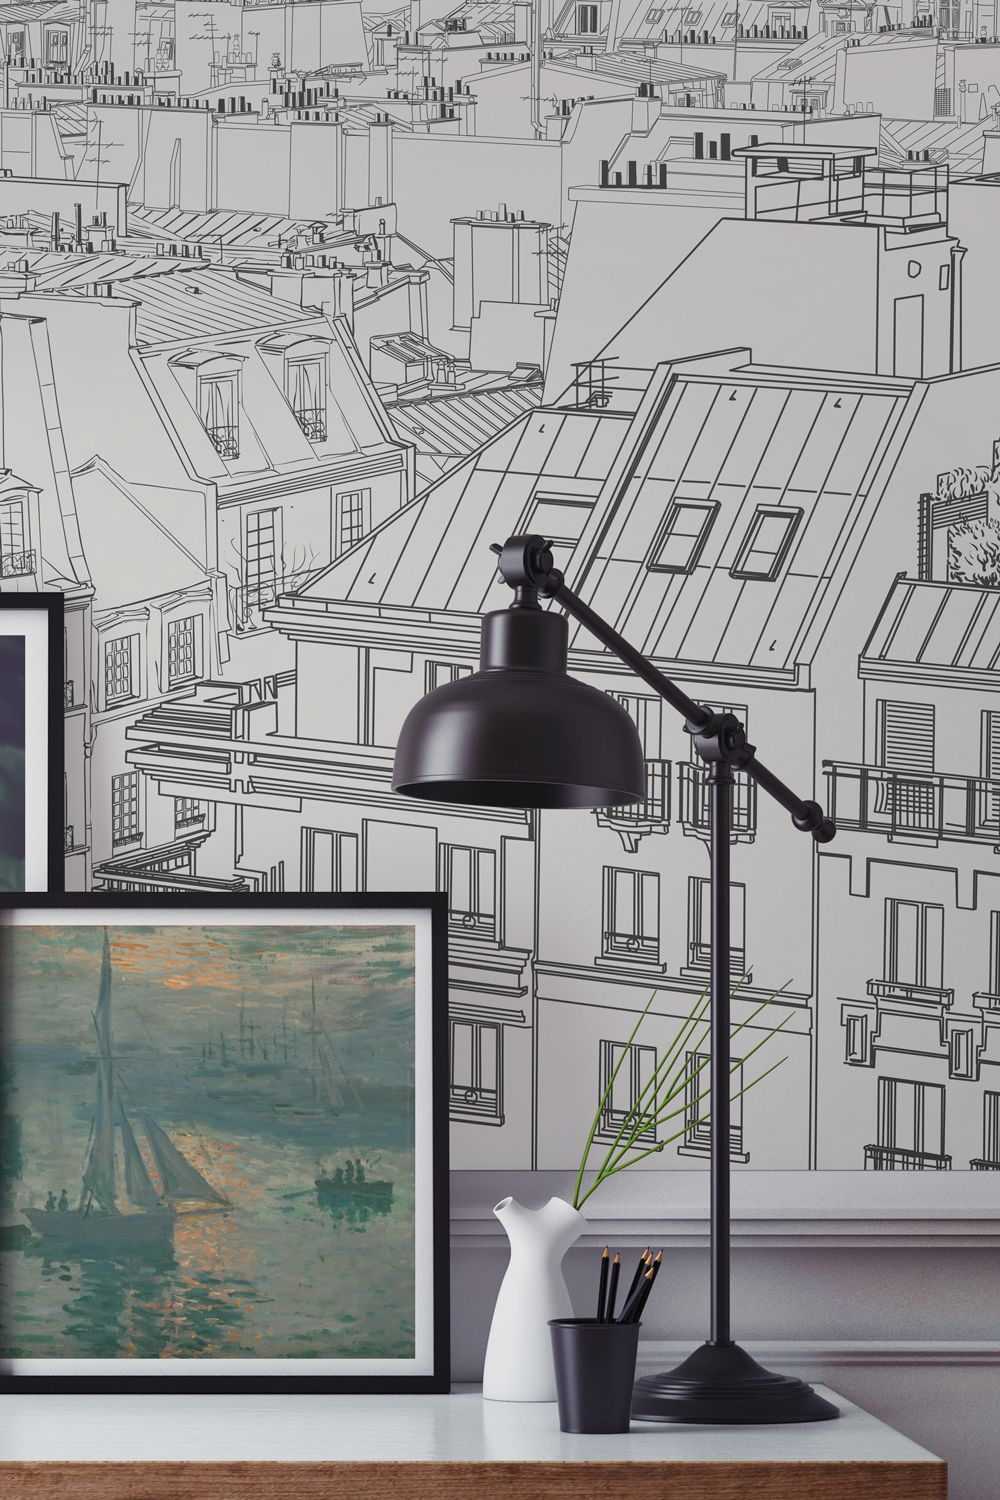 eb2bda7162 Want to create a sophisticated study space  Fall in love with the rooftops  of Paris with this completely unique city wallpaper mural.